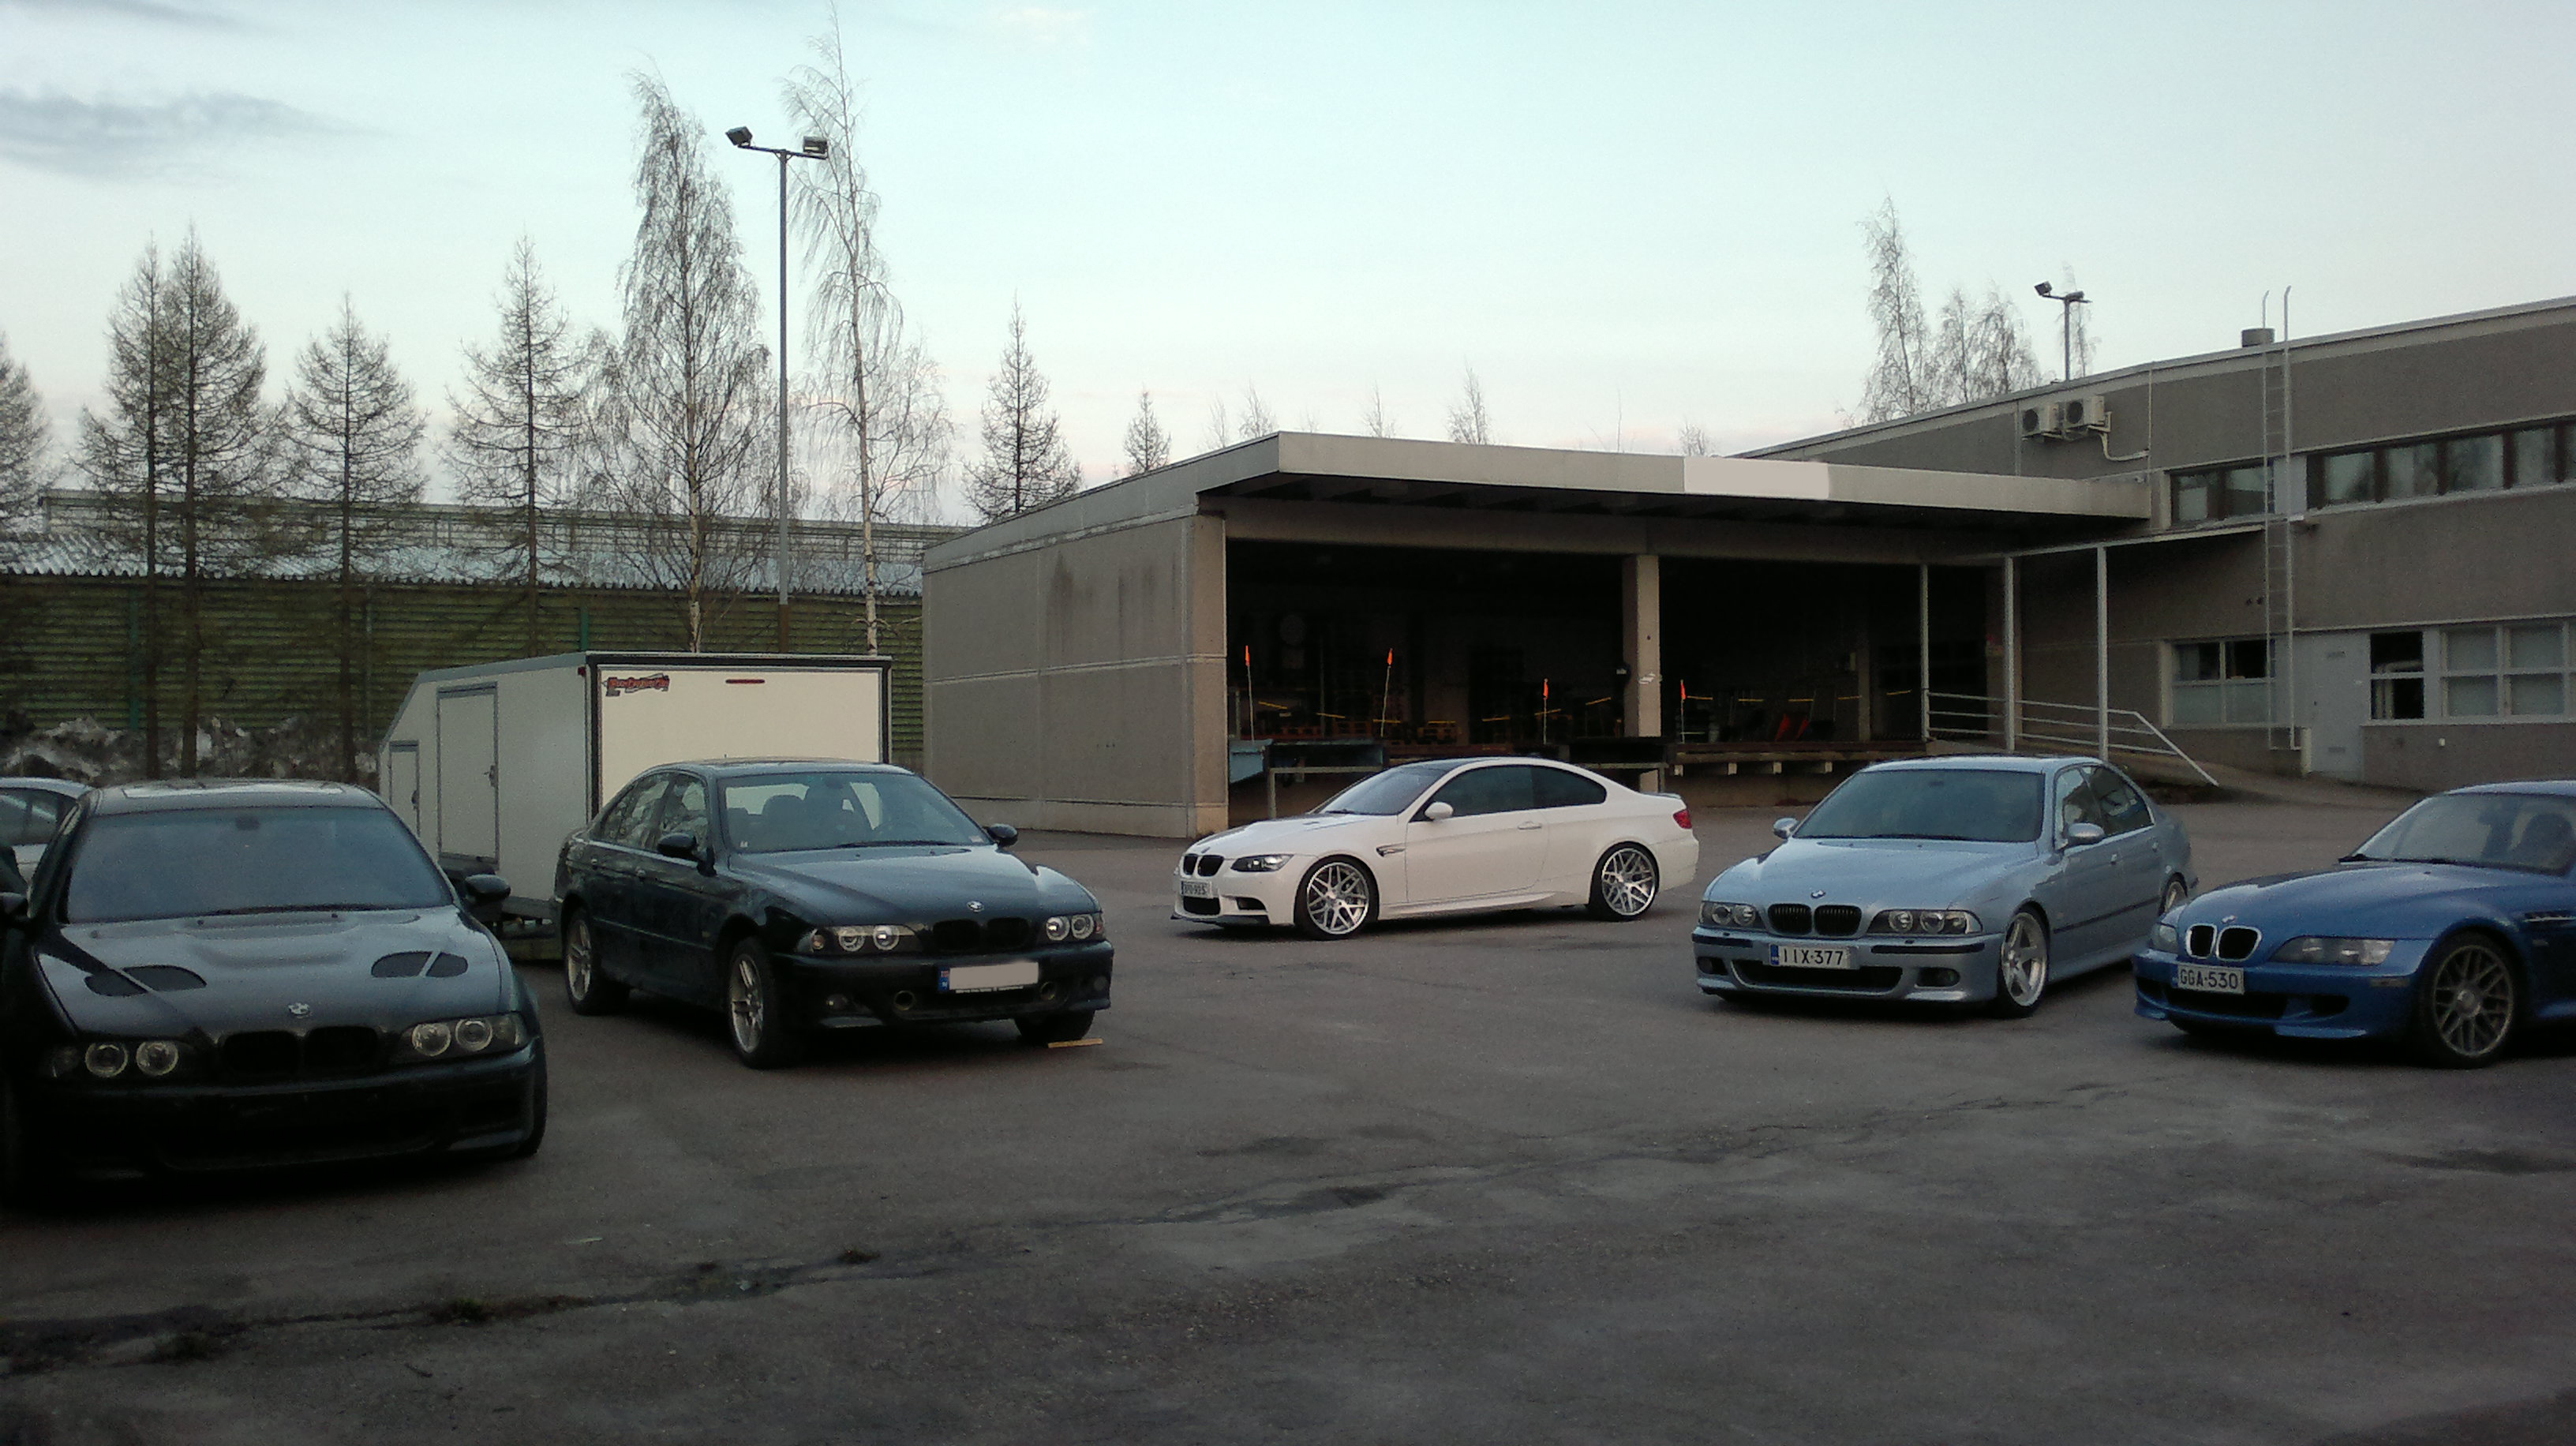 Random M5 pic of the day-2012-04-27-197.jpg